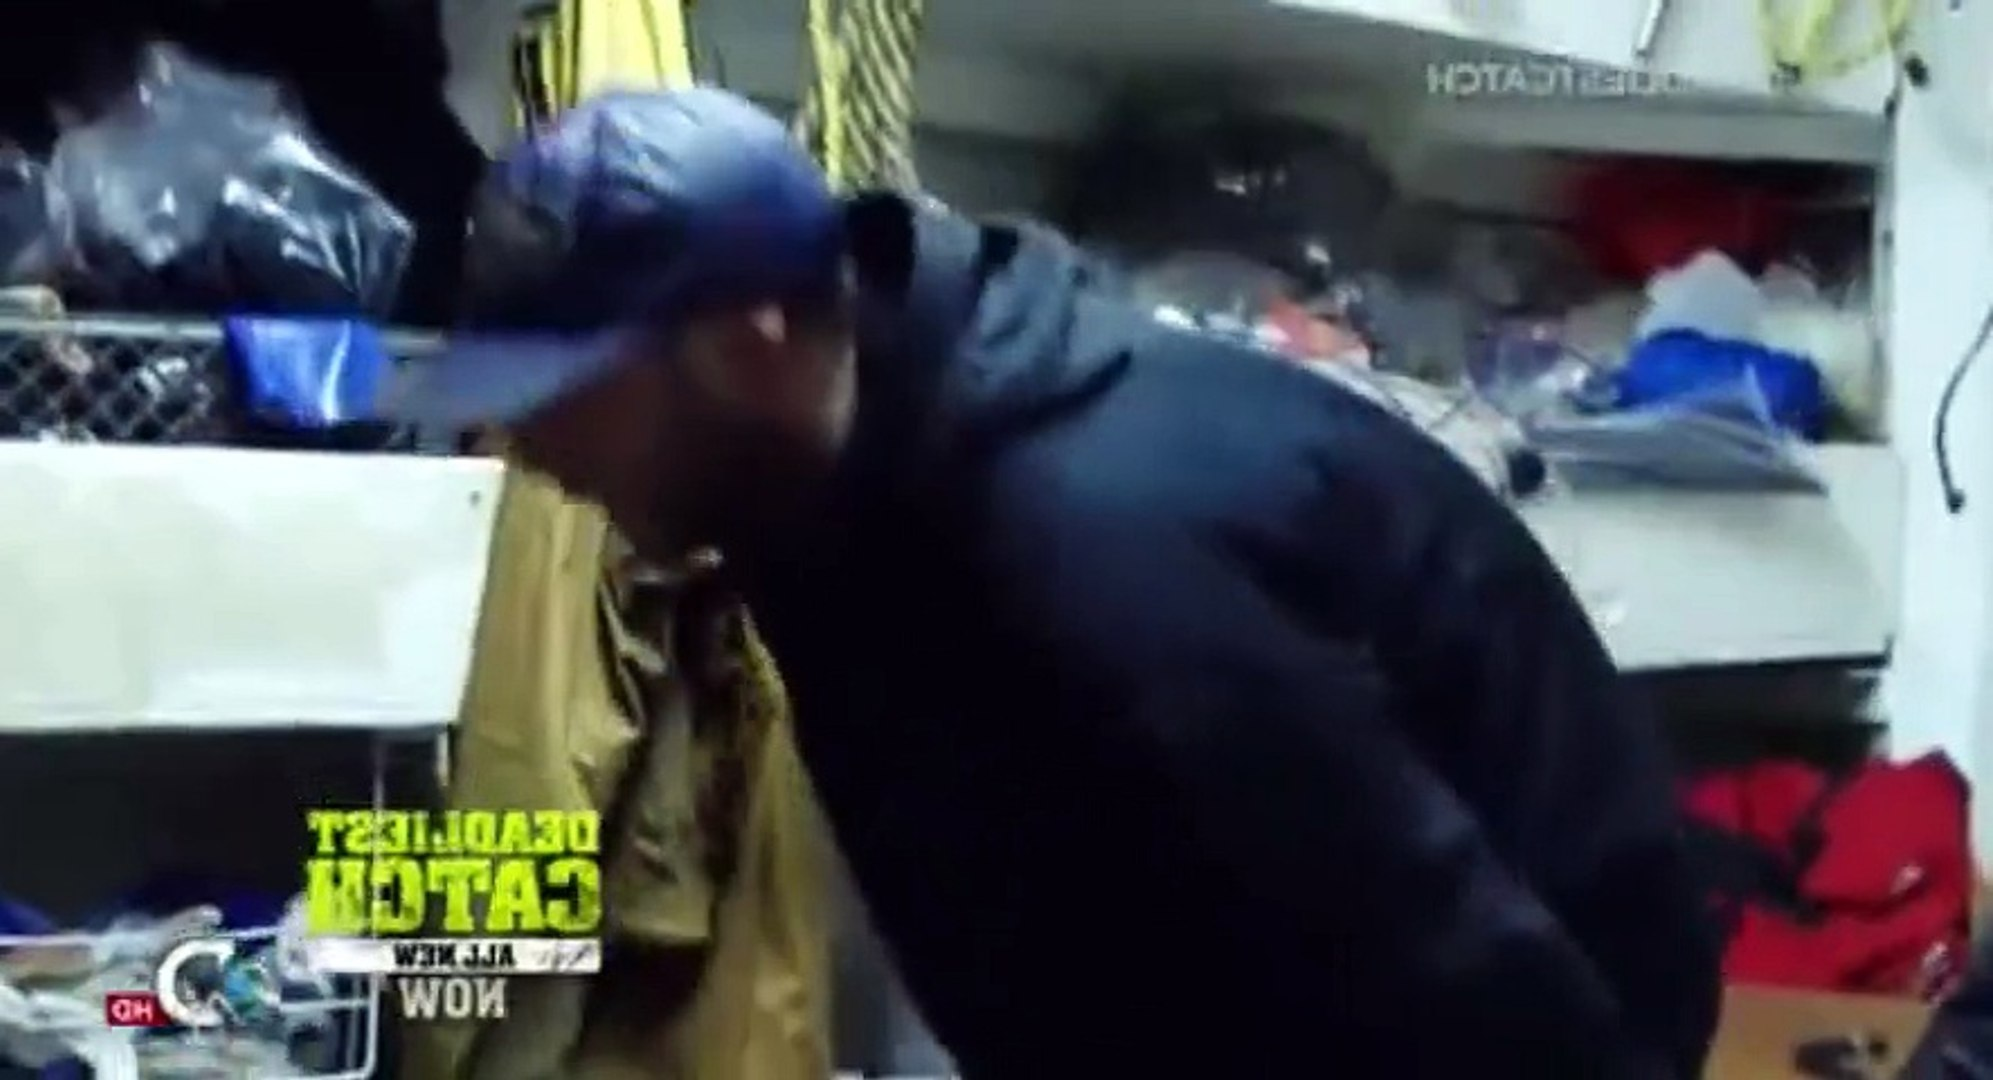 Deadliest Catch Crab Fishing in Alaska S09  E03 Blood in the Morning - Part 01